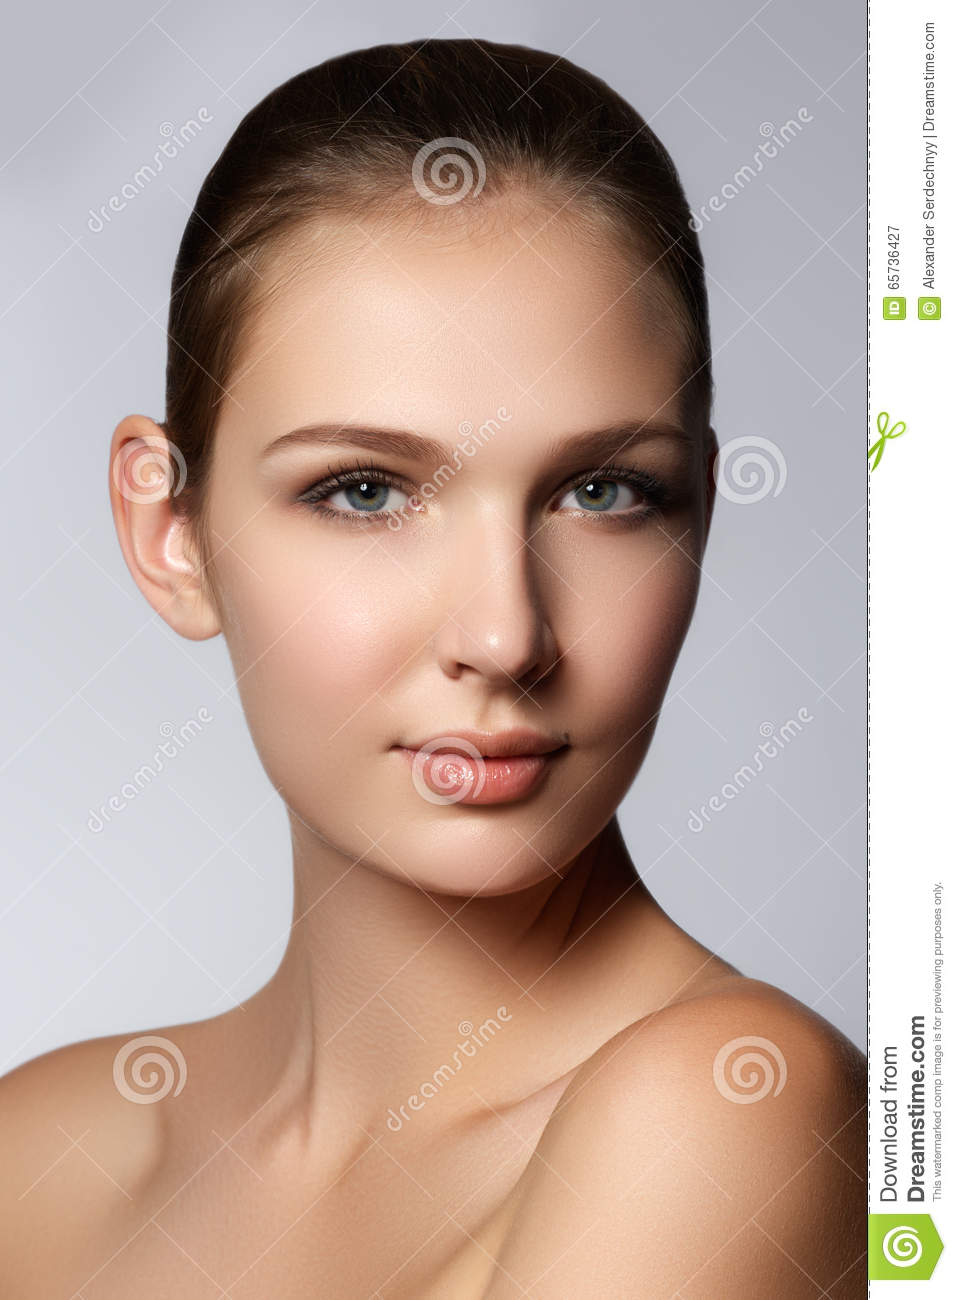 Glamour portrait of beautiful woman model with fresh daily makeup. Fashion shiny highlighter on skin, gloss lips make-up and